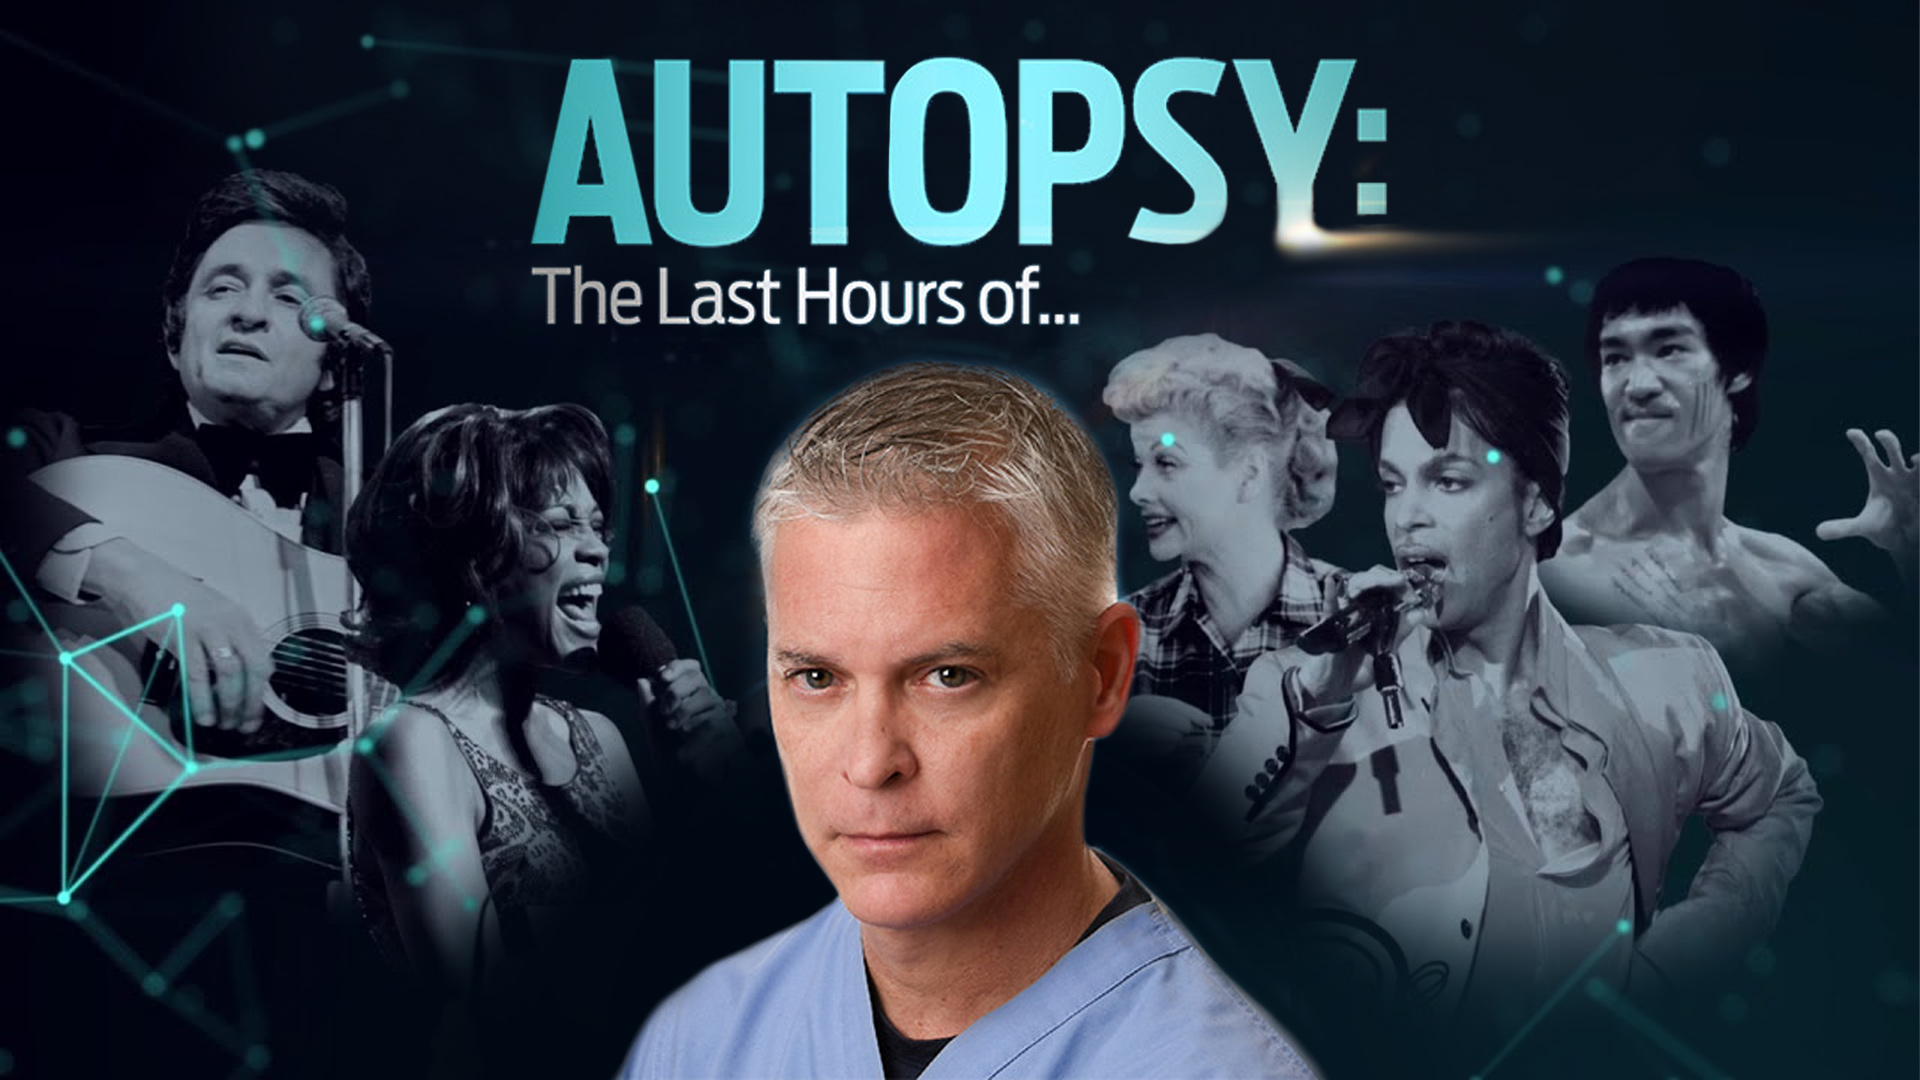 Autopsy The Last Hours of...